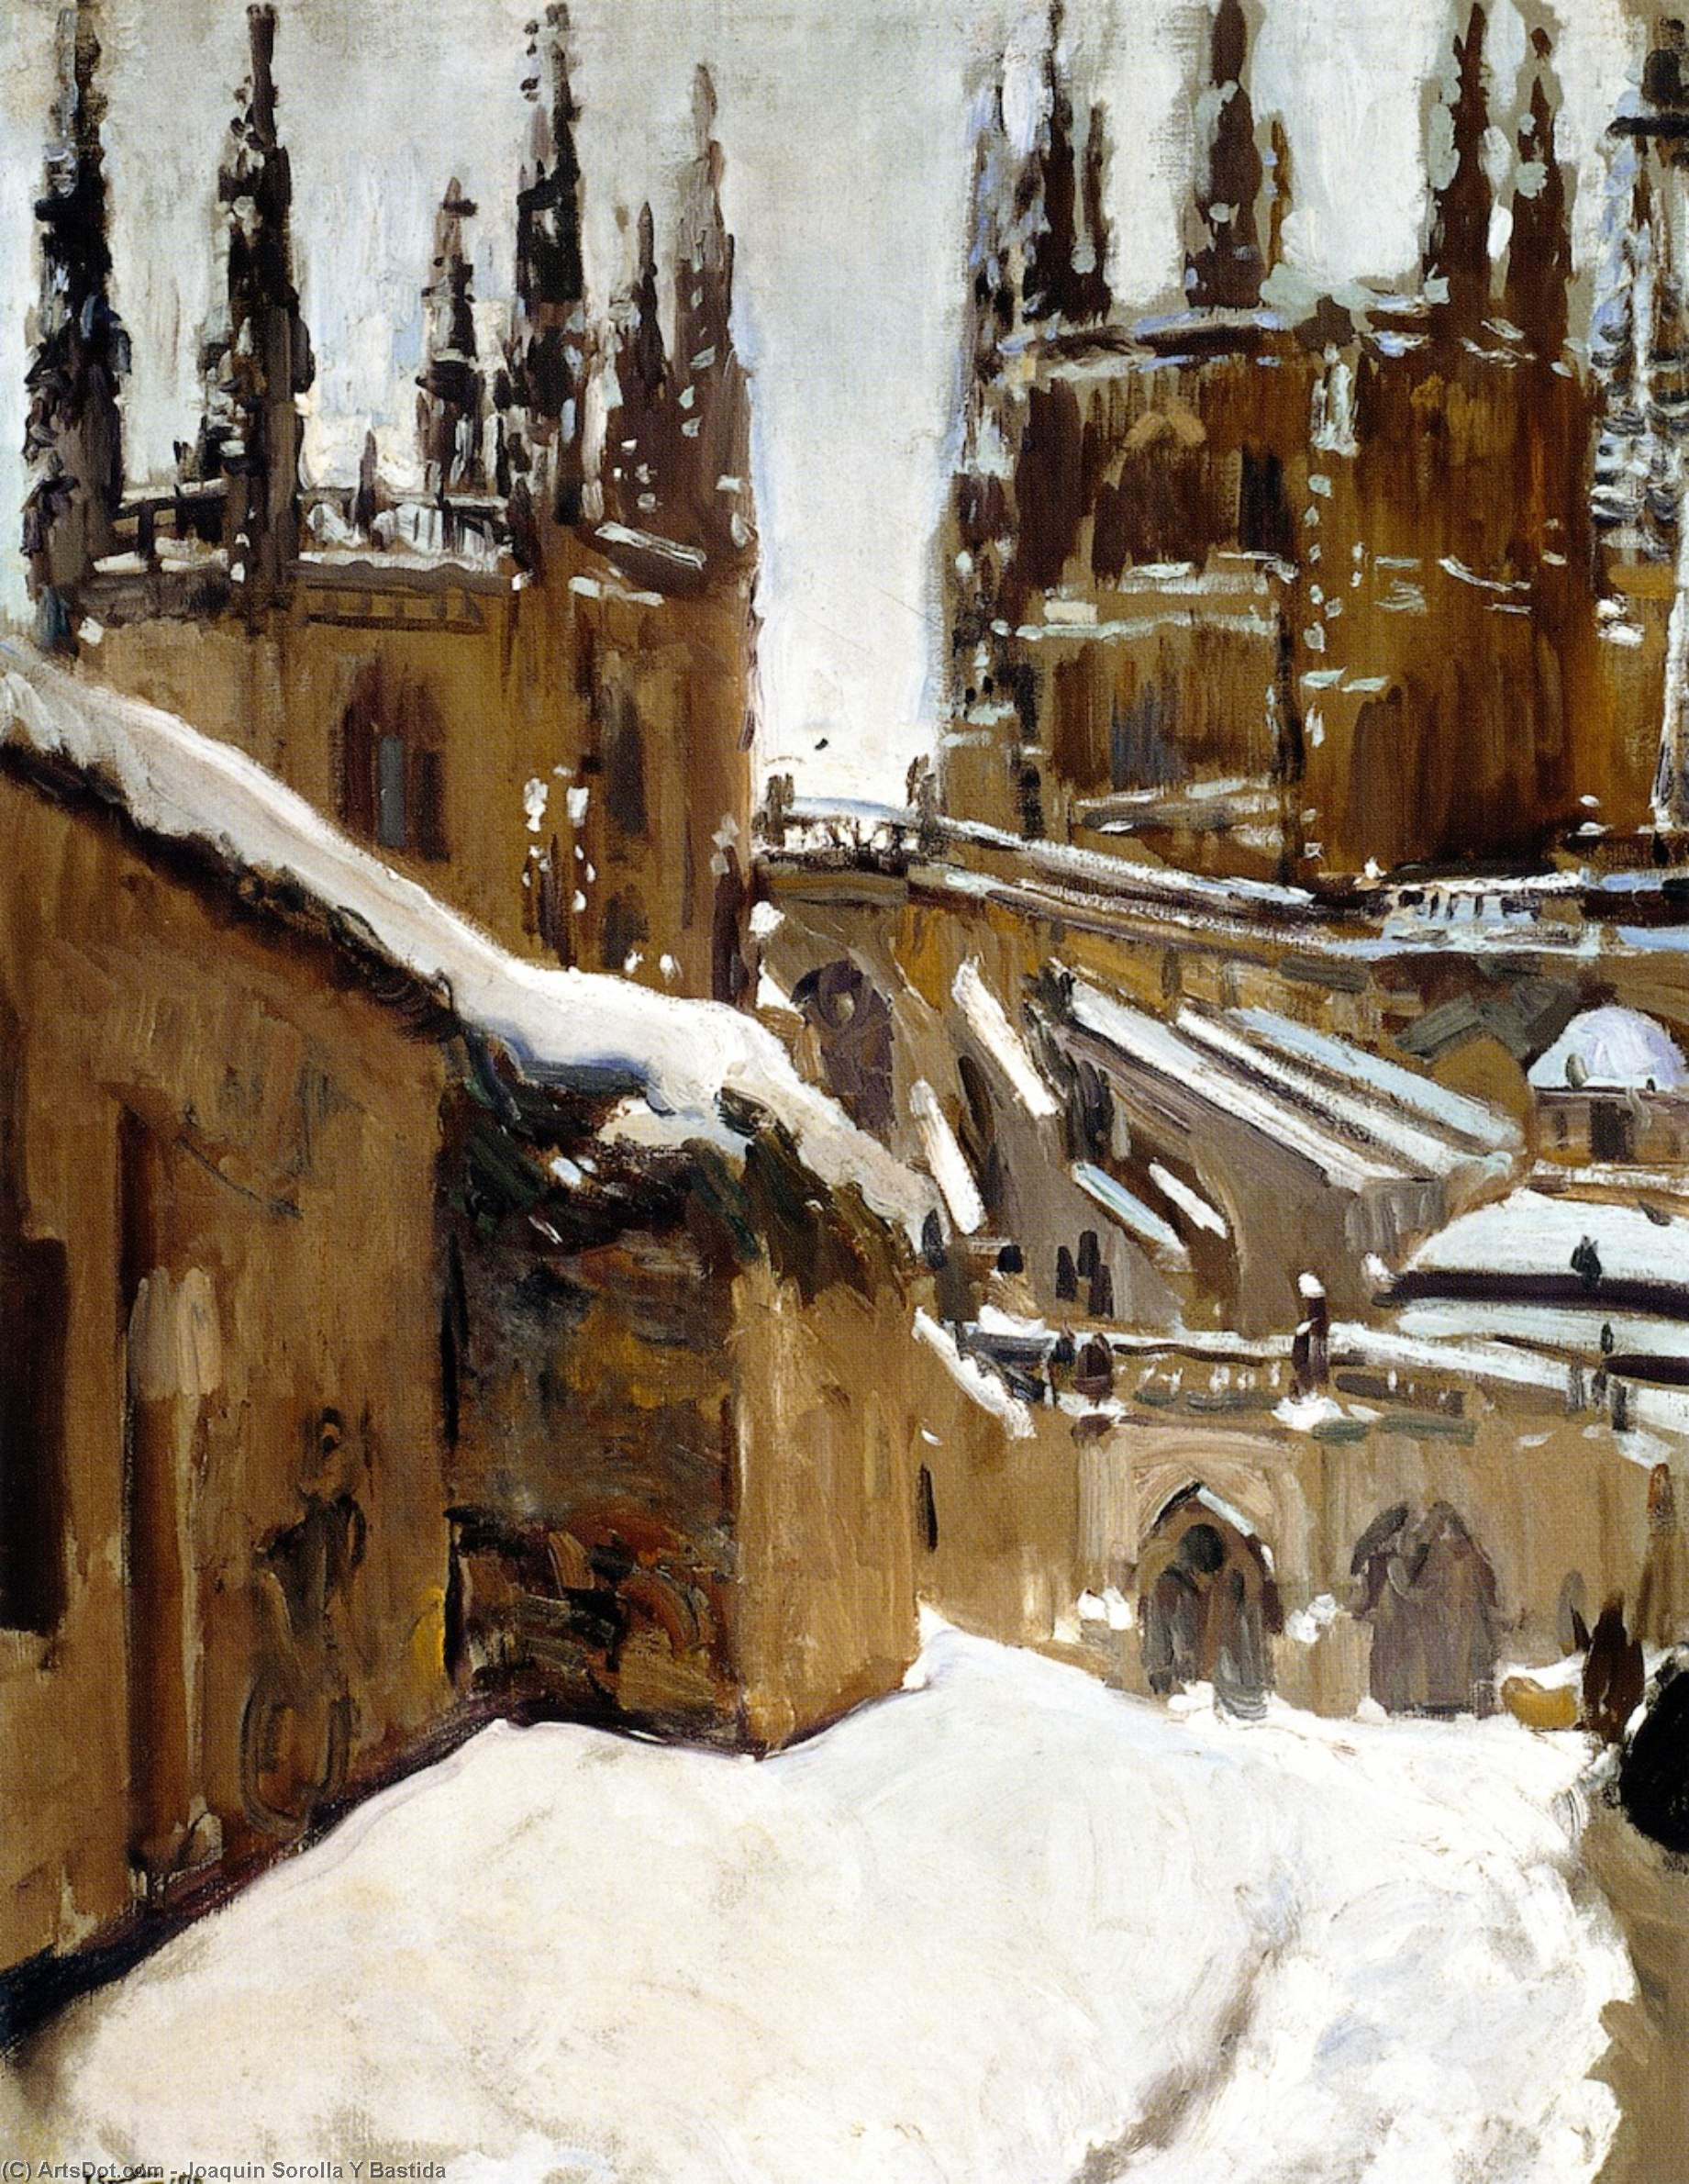 The Cathedral of Burgos under the Snow, Oil On Canvas by Joaquin Sorolla Y Bastida (1863-1923, Spain)